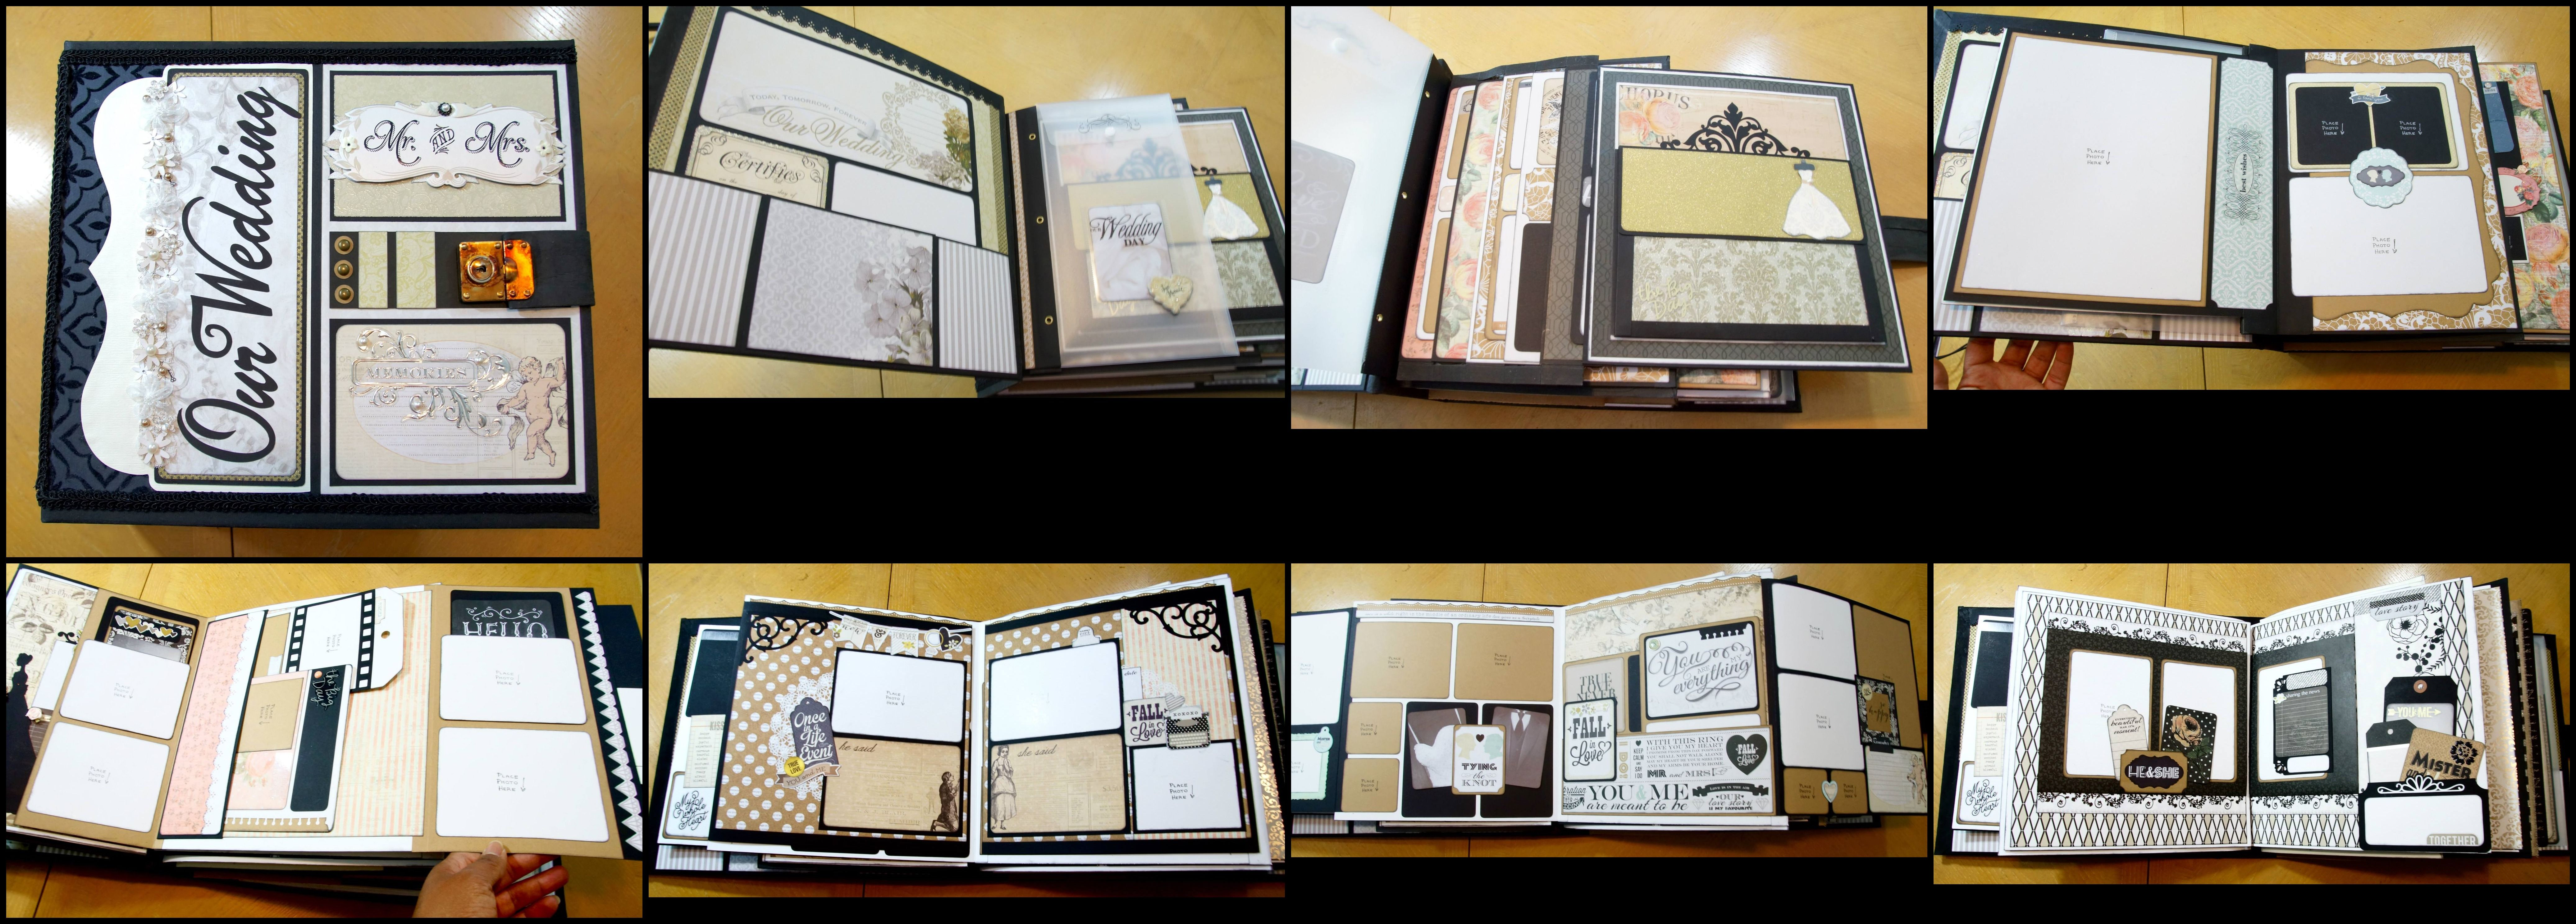 Creative Stylist Suzanne Hue's Wedding version of the Retrospection 365 is stunning! Designed by Kathy King of Paper Phenomenon http://shop.paperphenomenon.com/Retrospection-365-Tutorial-and-How-to-Videos-TUT083.htm Click here to see more fabulous photos of this album: http://paperphenomenon.com/blog/2015/07/30/inspiration-retrospection-365-4/